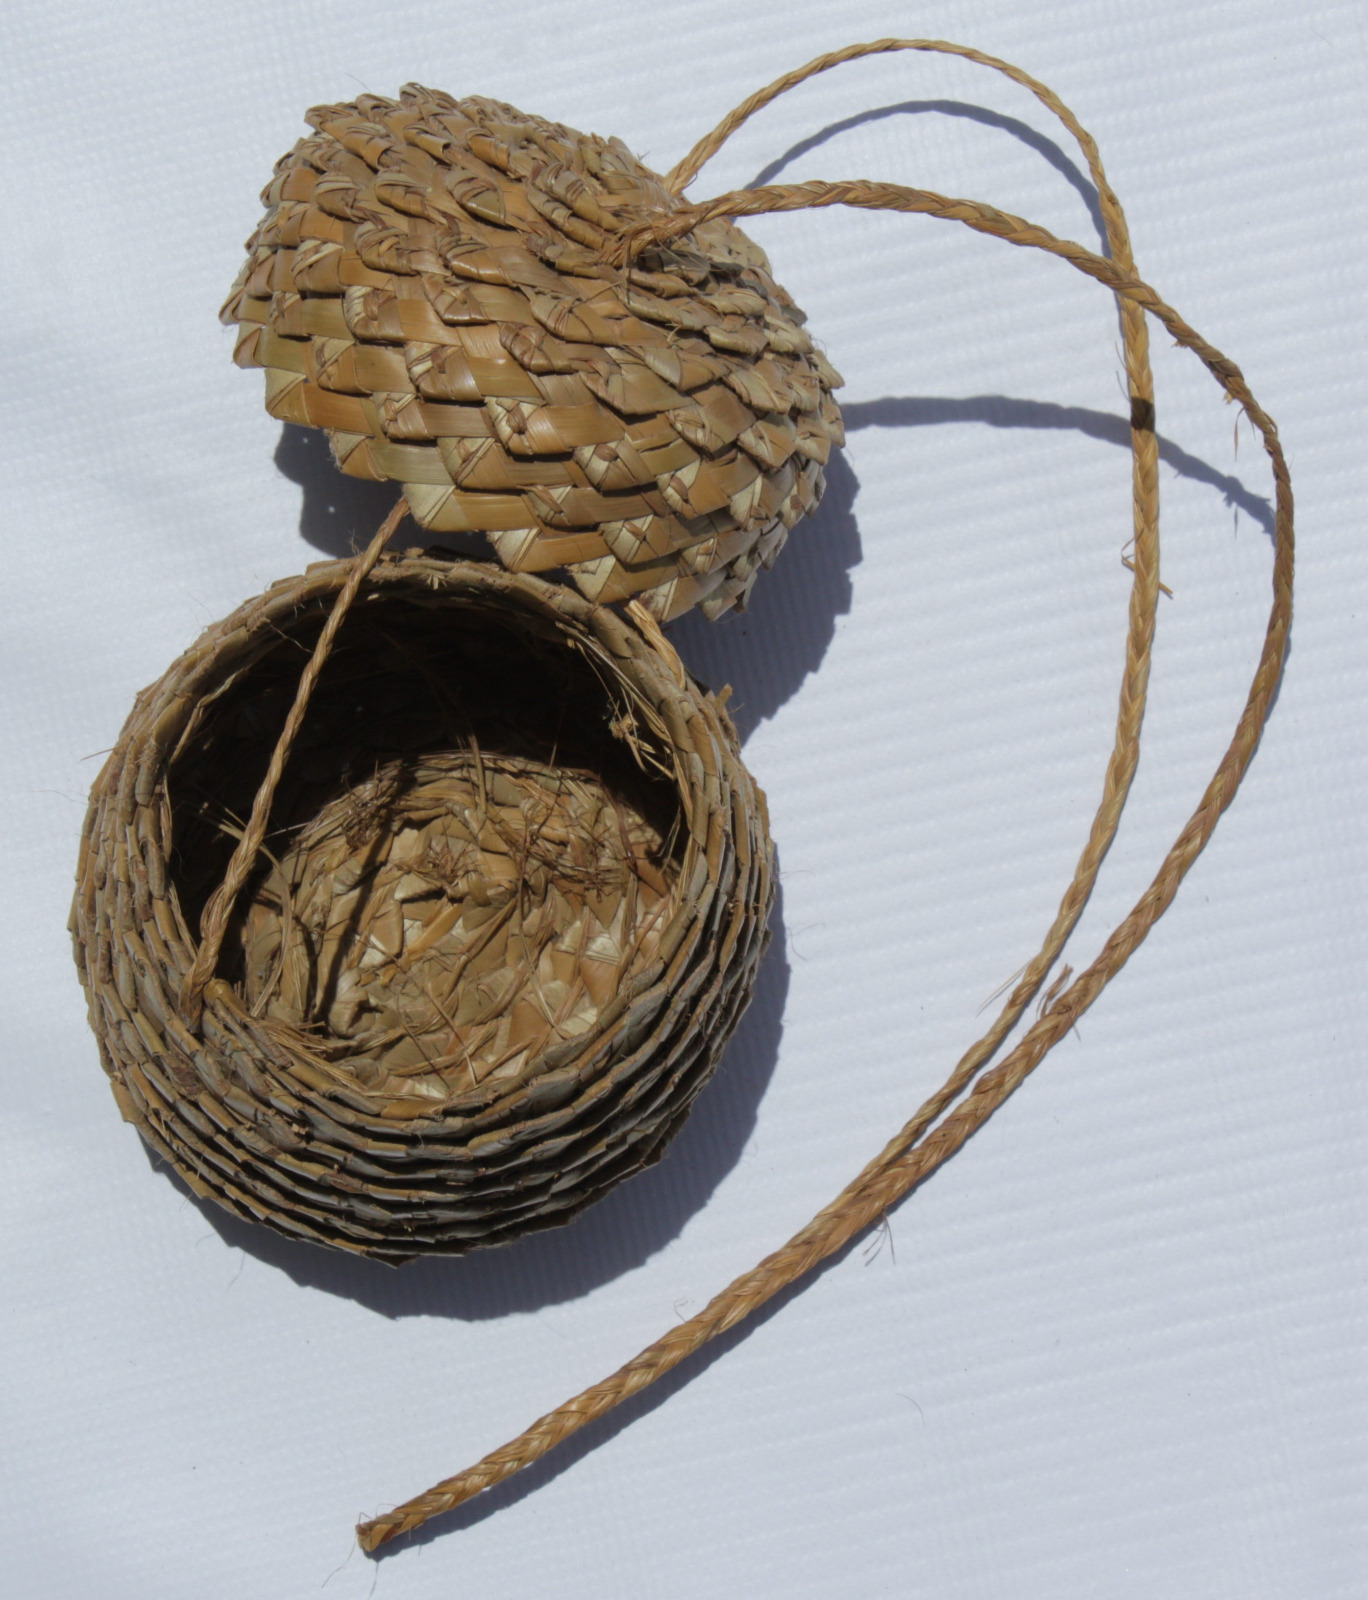 Handcrafted Straw Basket